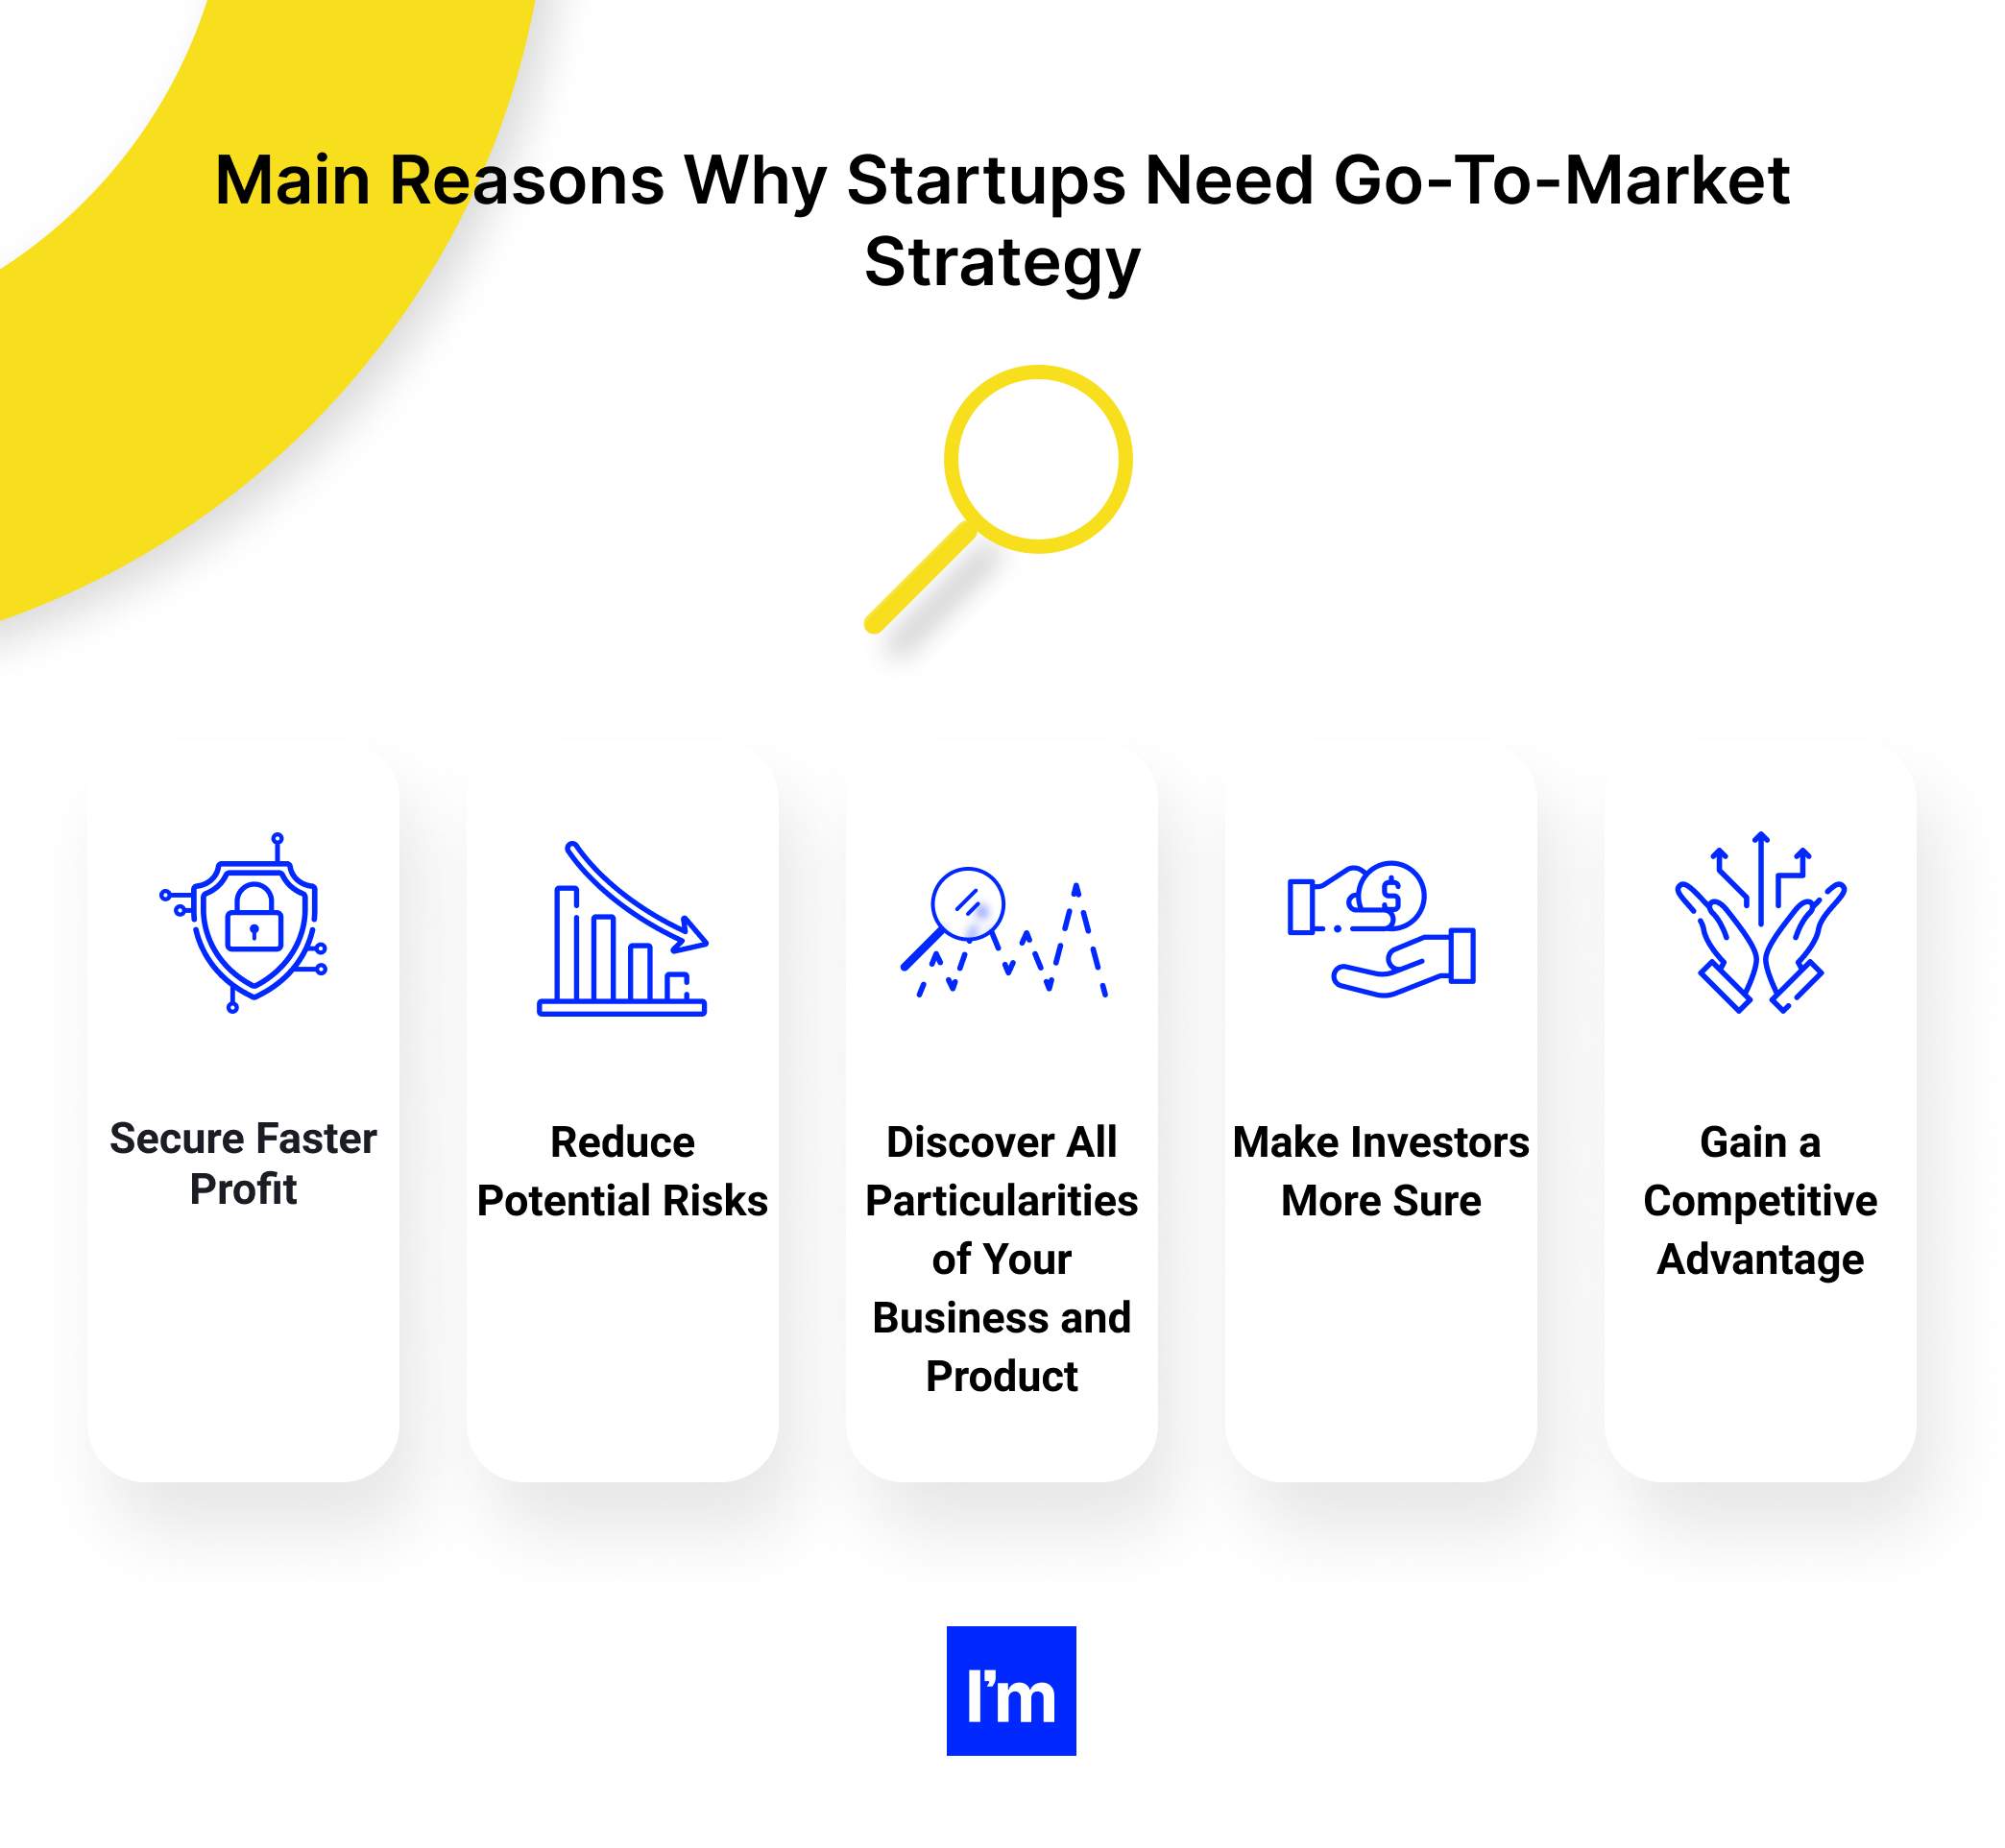 Why startups need a Go-To-Market strategy